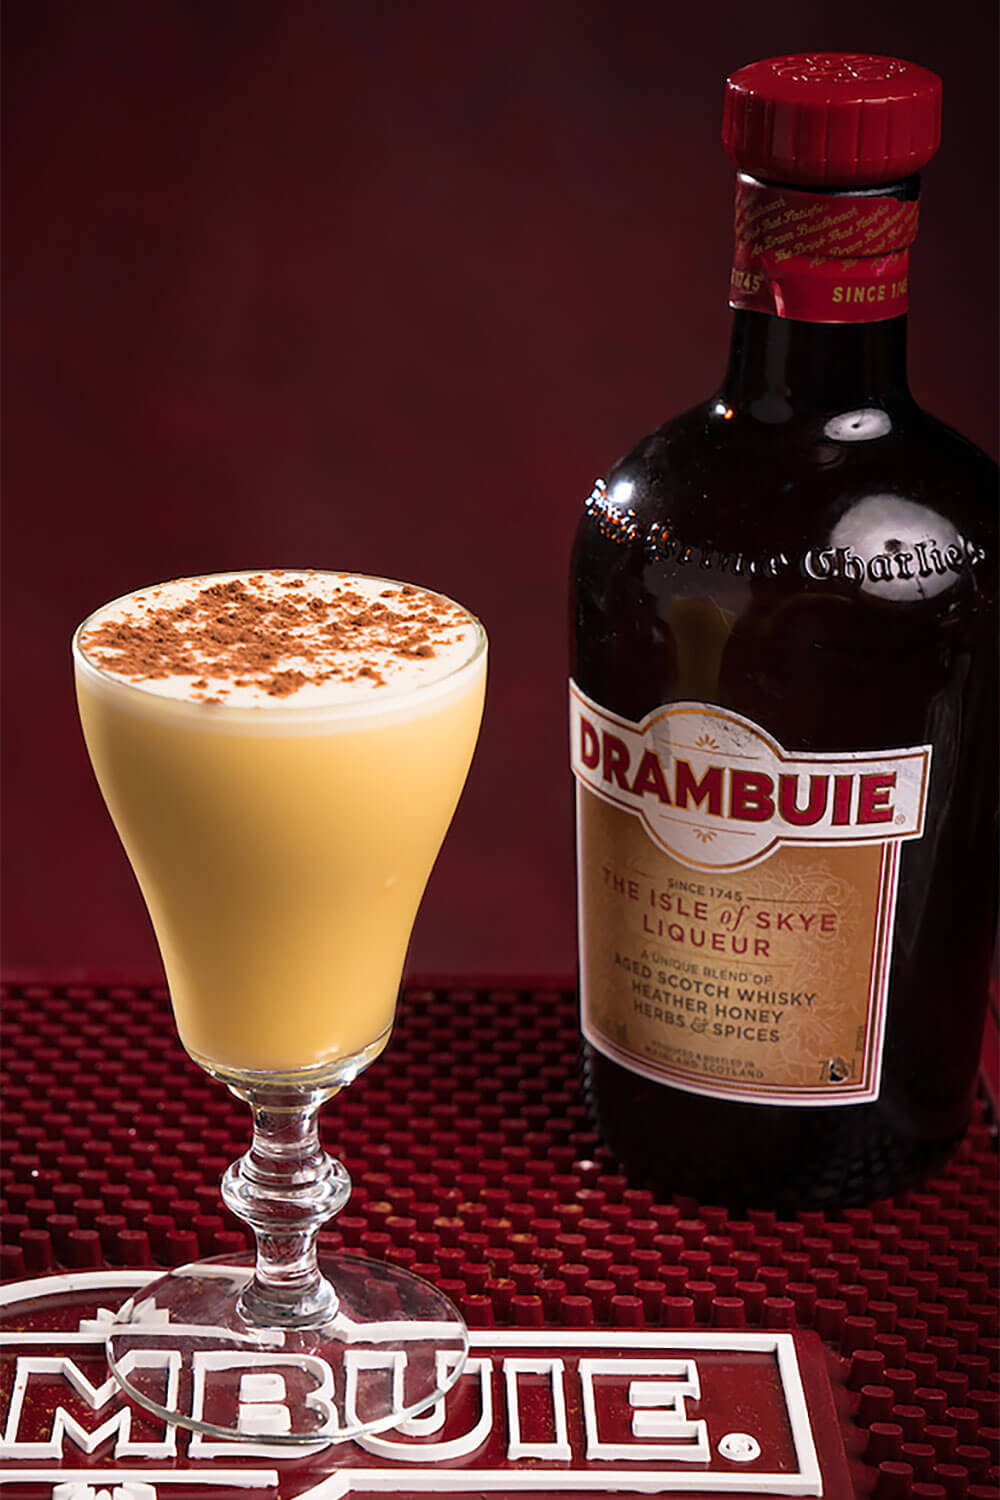 The Drambuie Flip